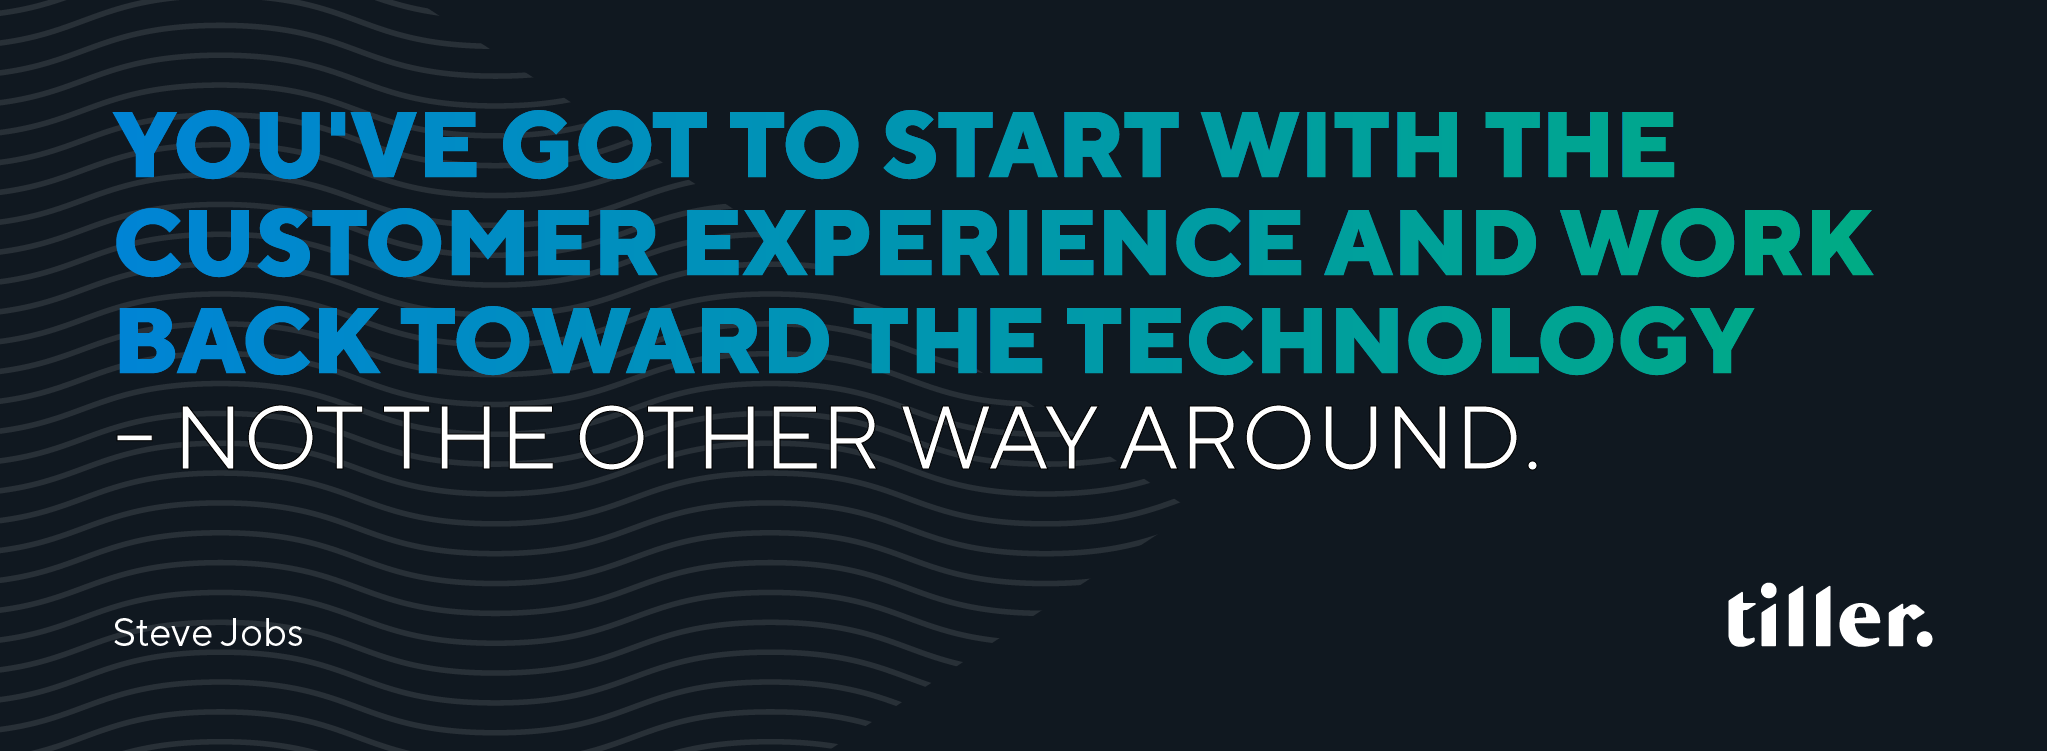 Customer experience quote by Steve Jobs